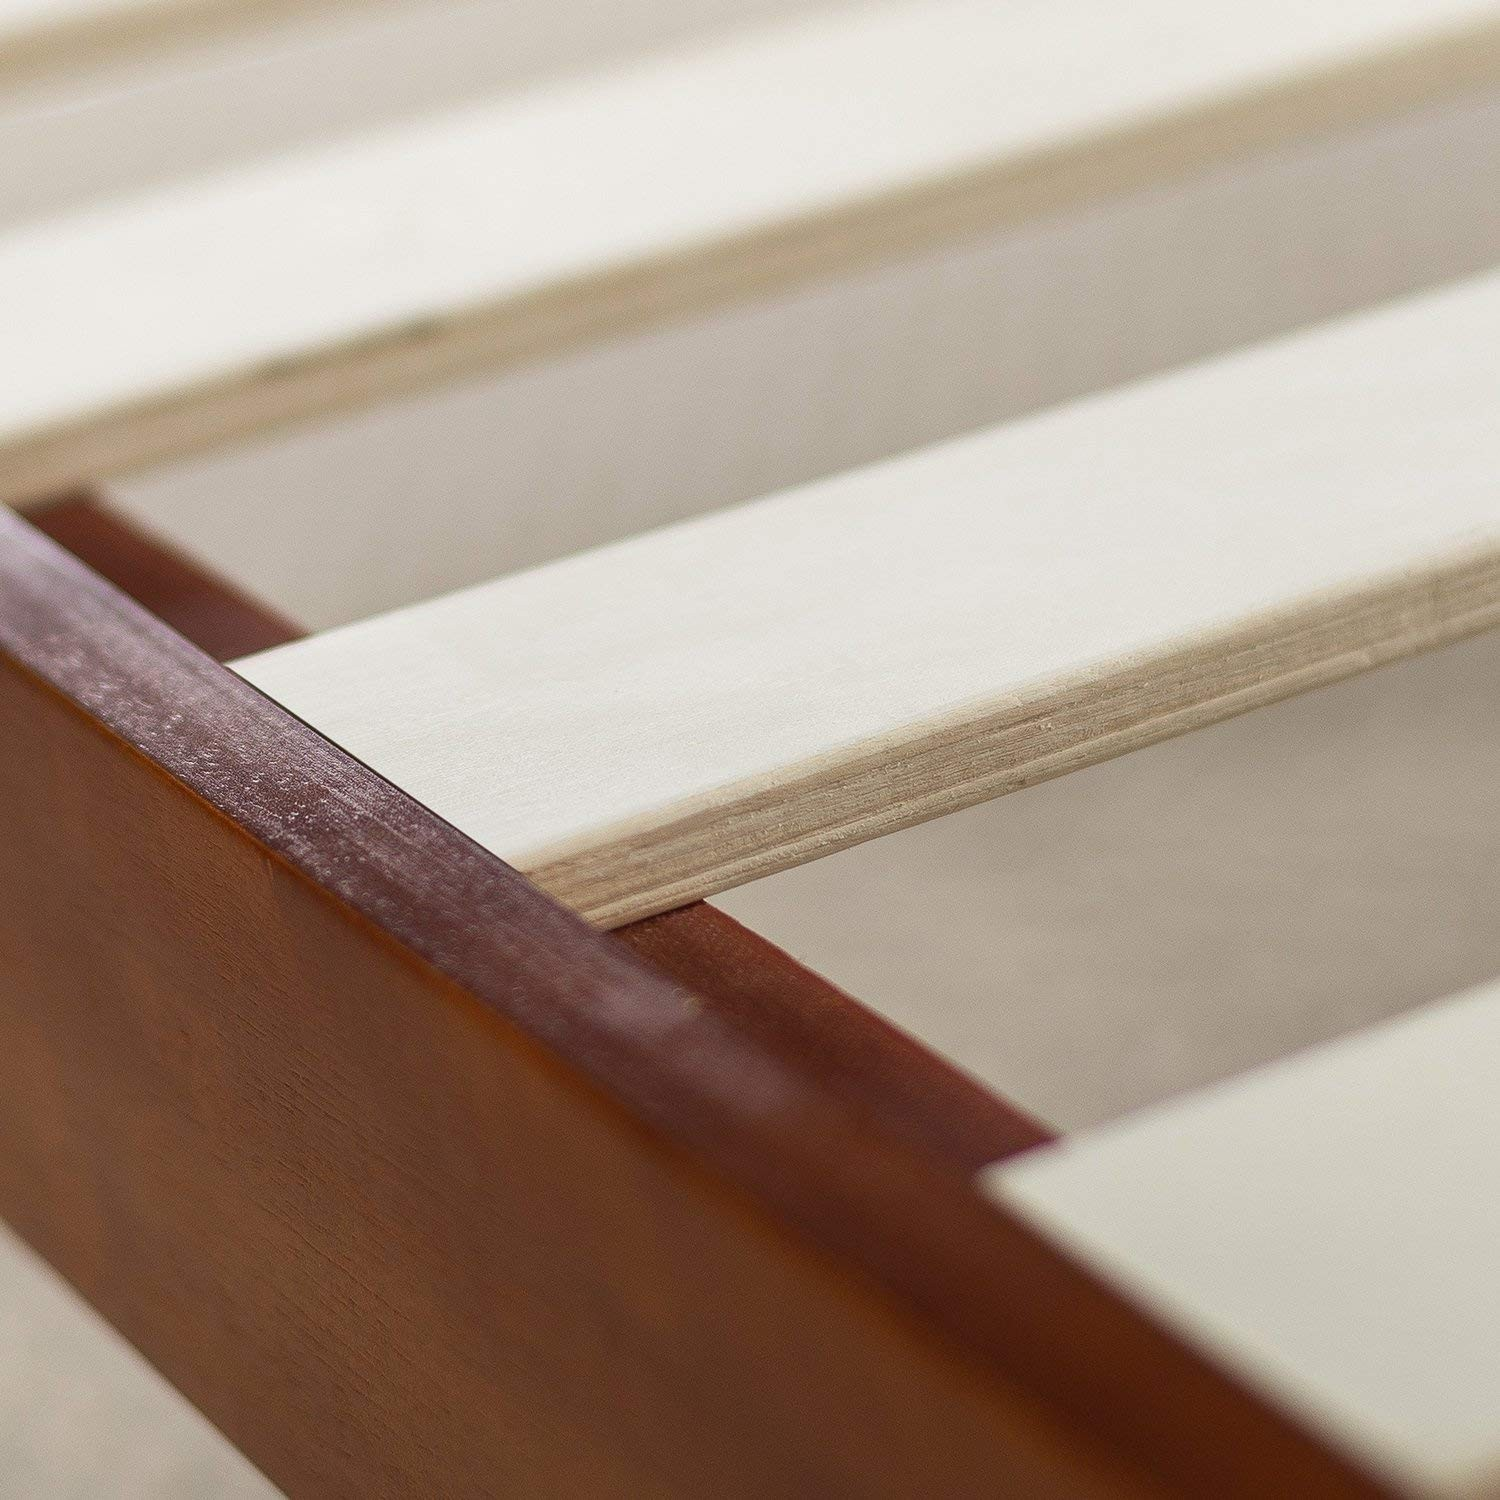 How To Remove Sticky Residue From Wood Furniture